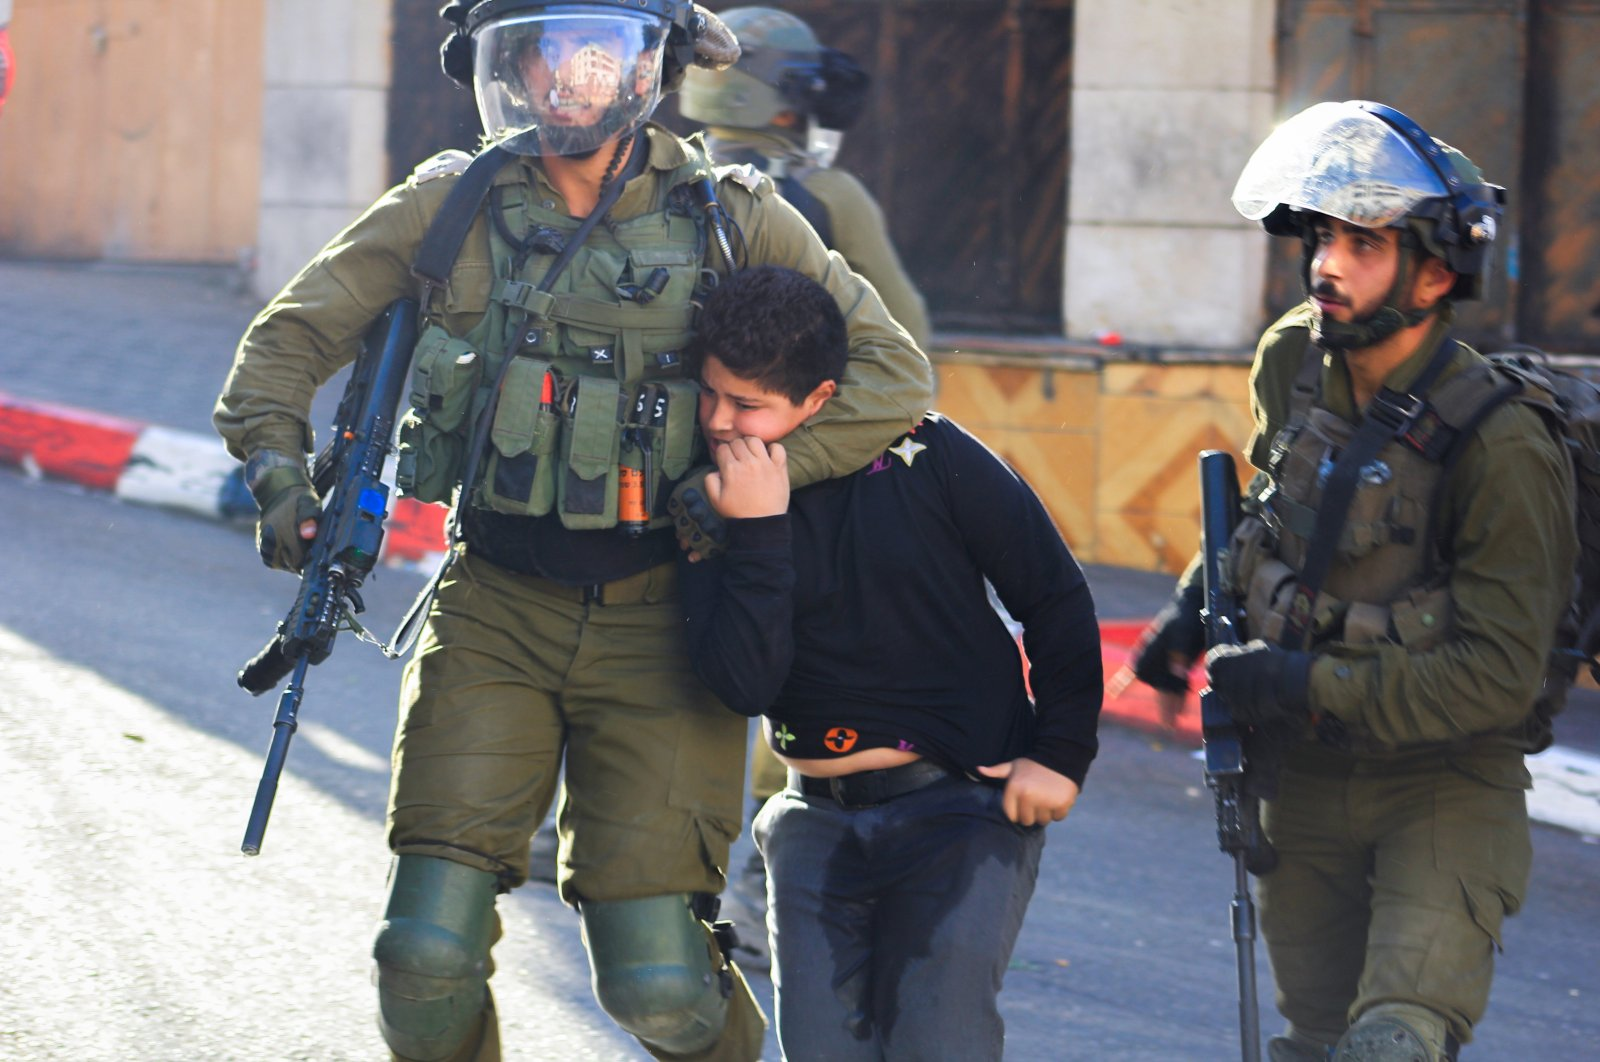 Israeli soldiers detain a Palestinian boy, in Hebron, Israeli-occupied West Bank, Sept. 23, 2021. (Reuters Photo)